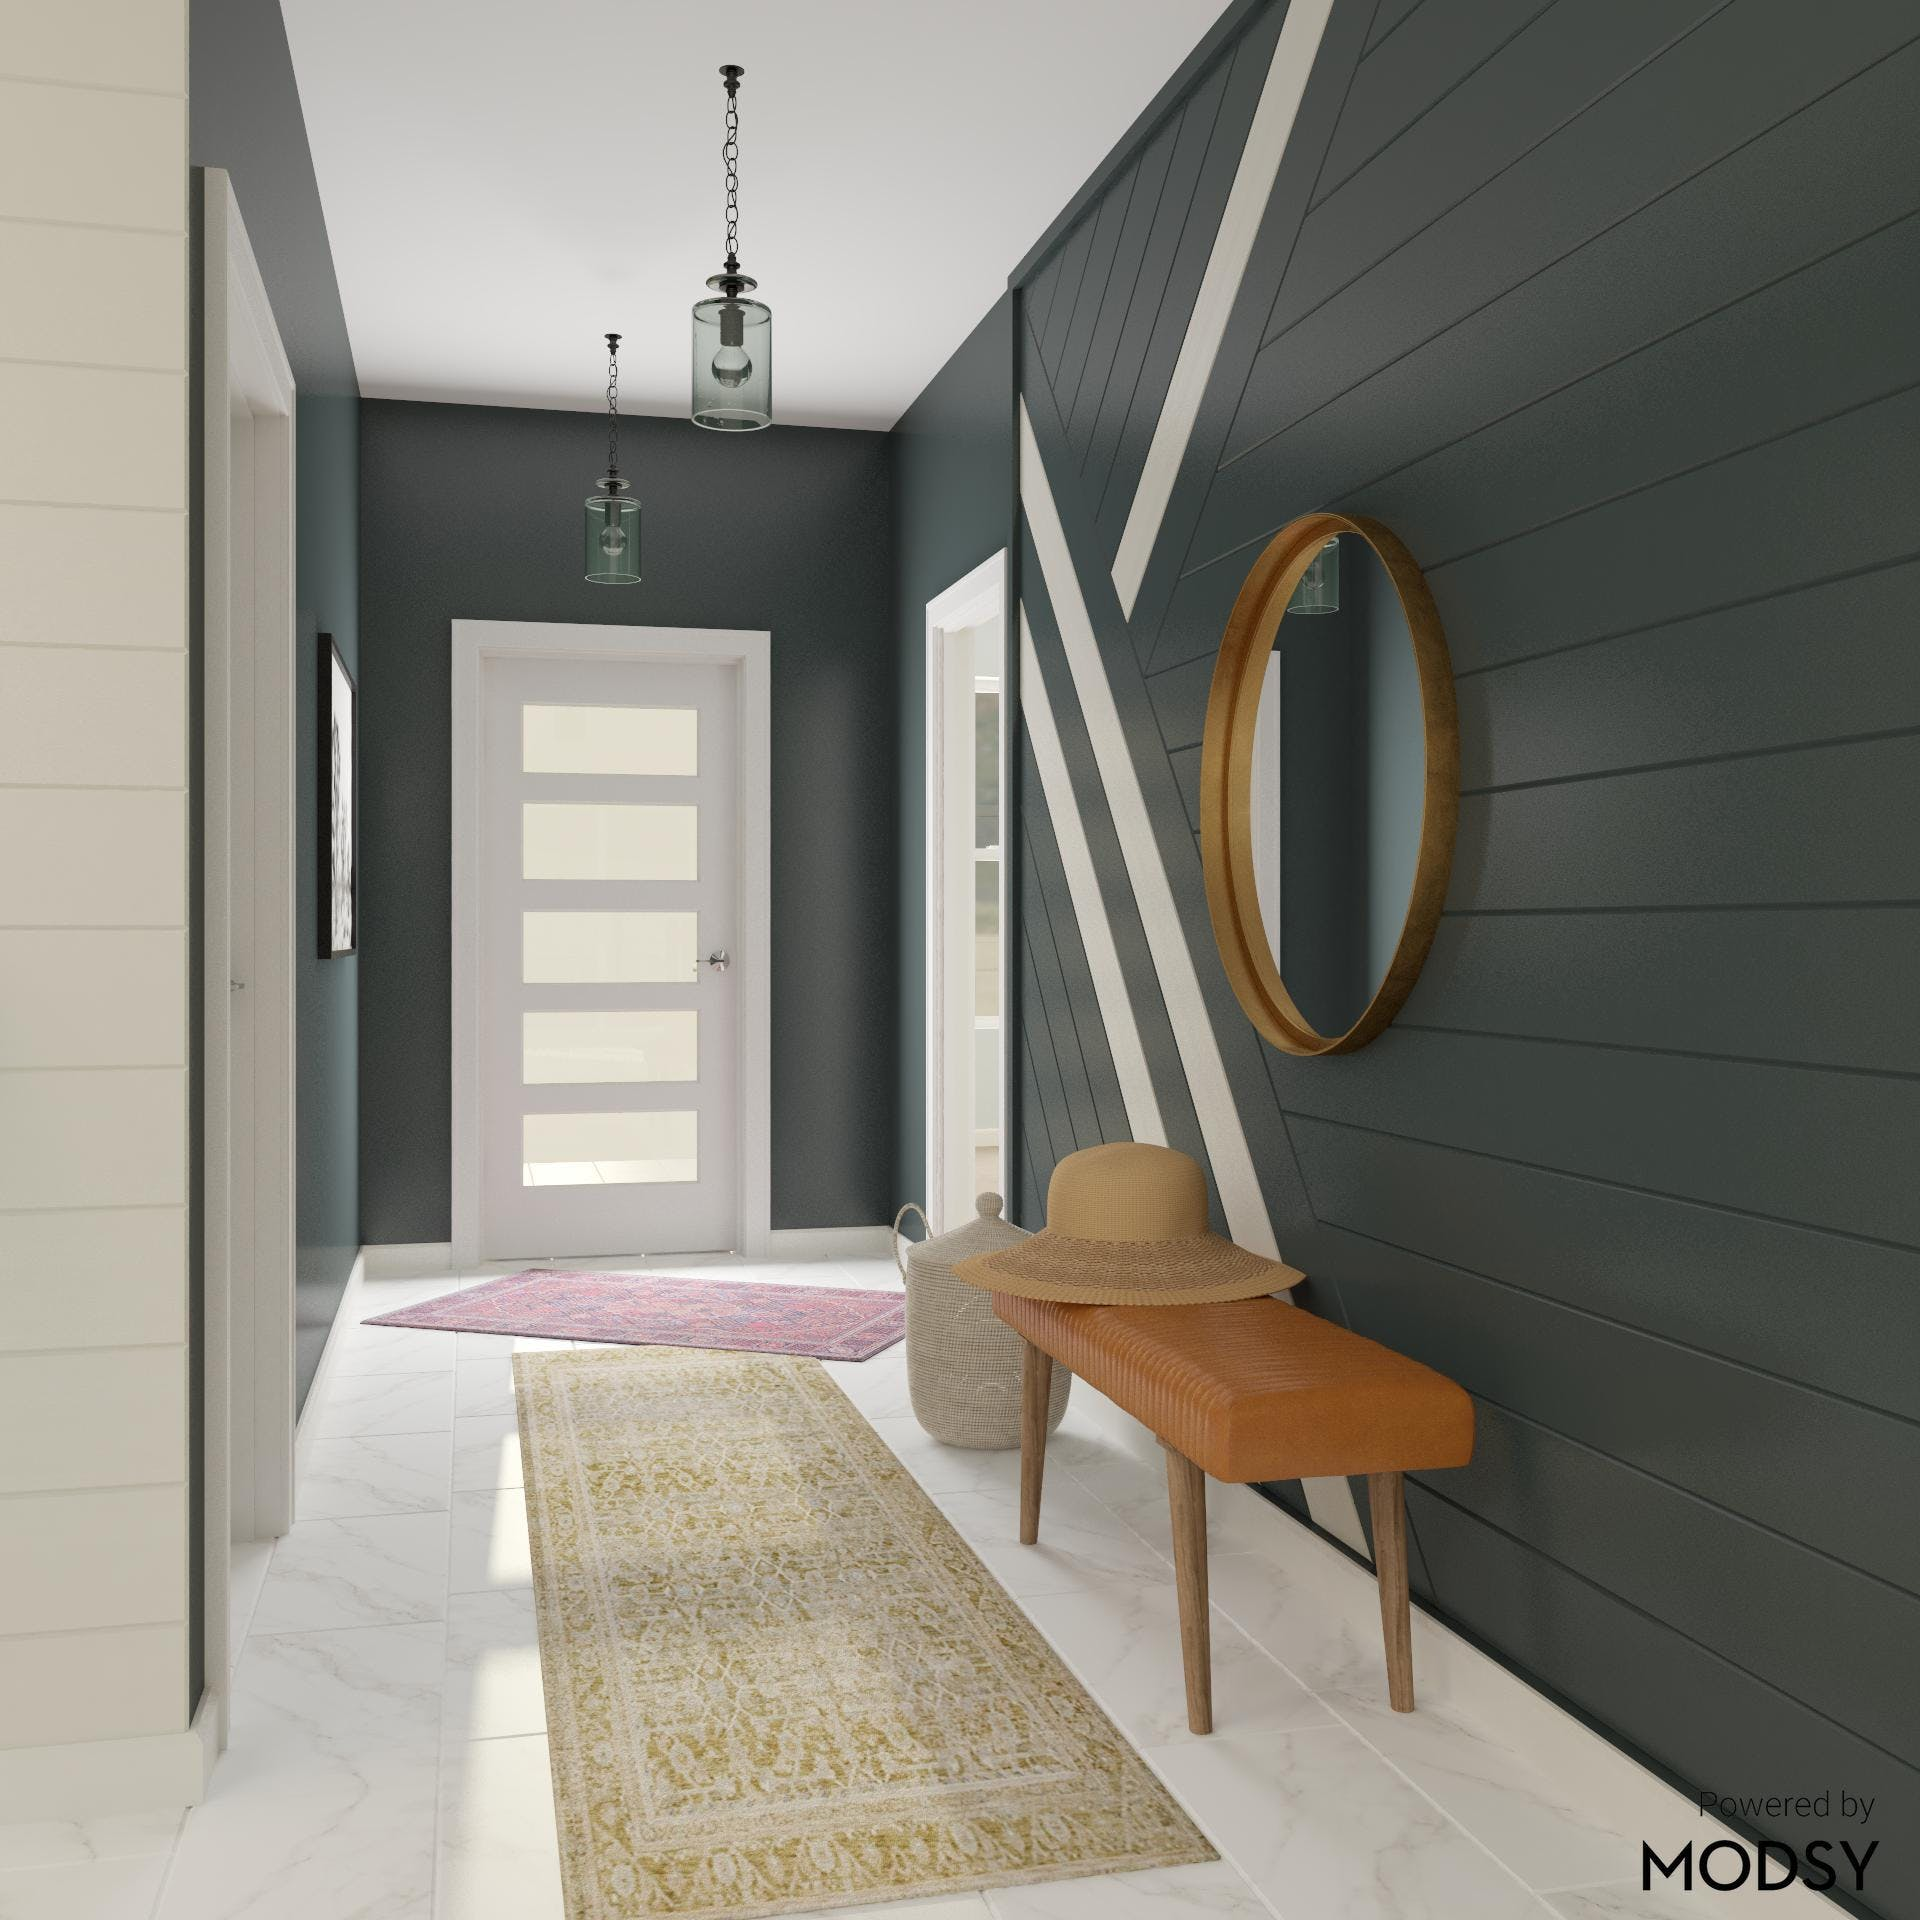 Moody Entryway with Eclectic Styling